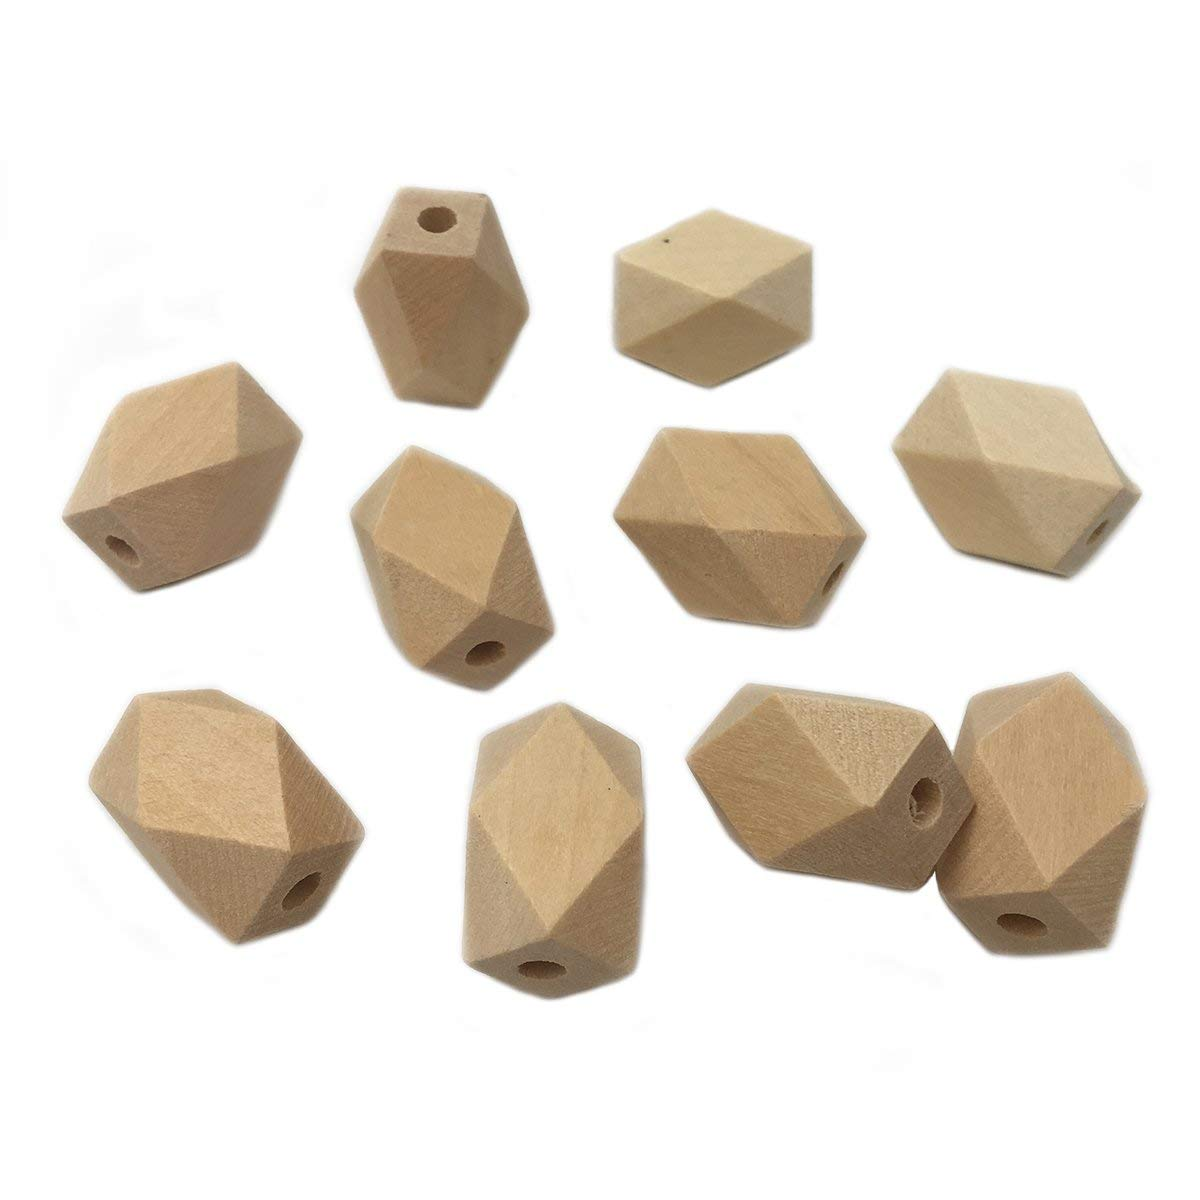 Wendysun 15mm22mm 50Pcs Natural Organic Maple Unfinished Hexagon Geometric Wooden Beads DIY Necklace Bracelet Beads Accessories&Crafts Baby Teether Hanging Materials Wooden Teether